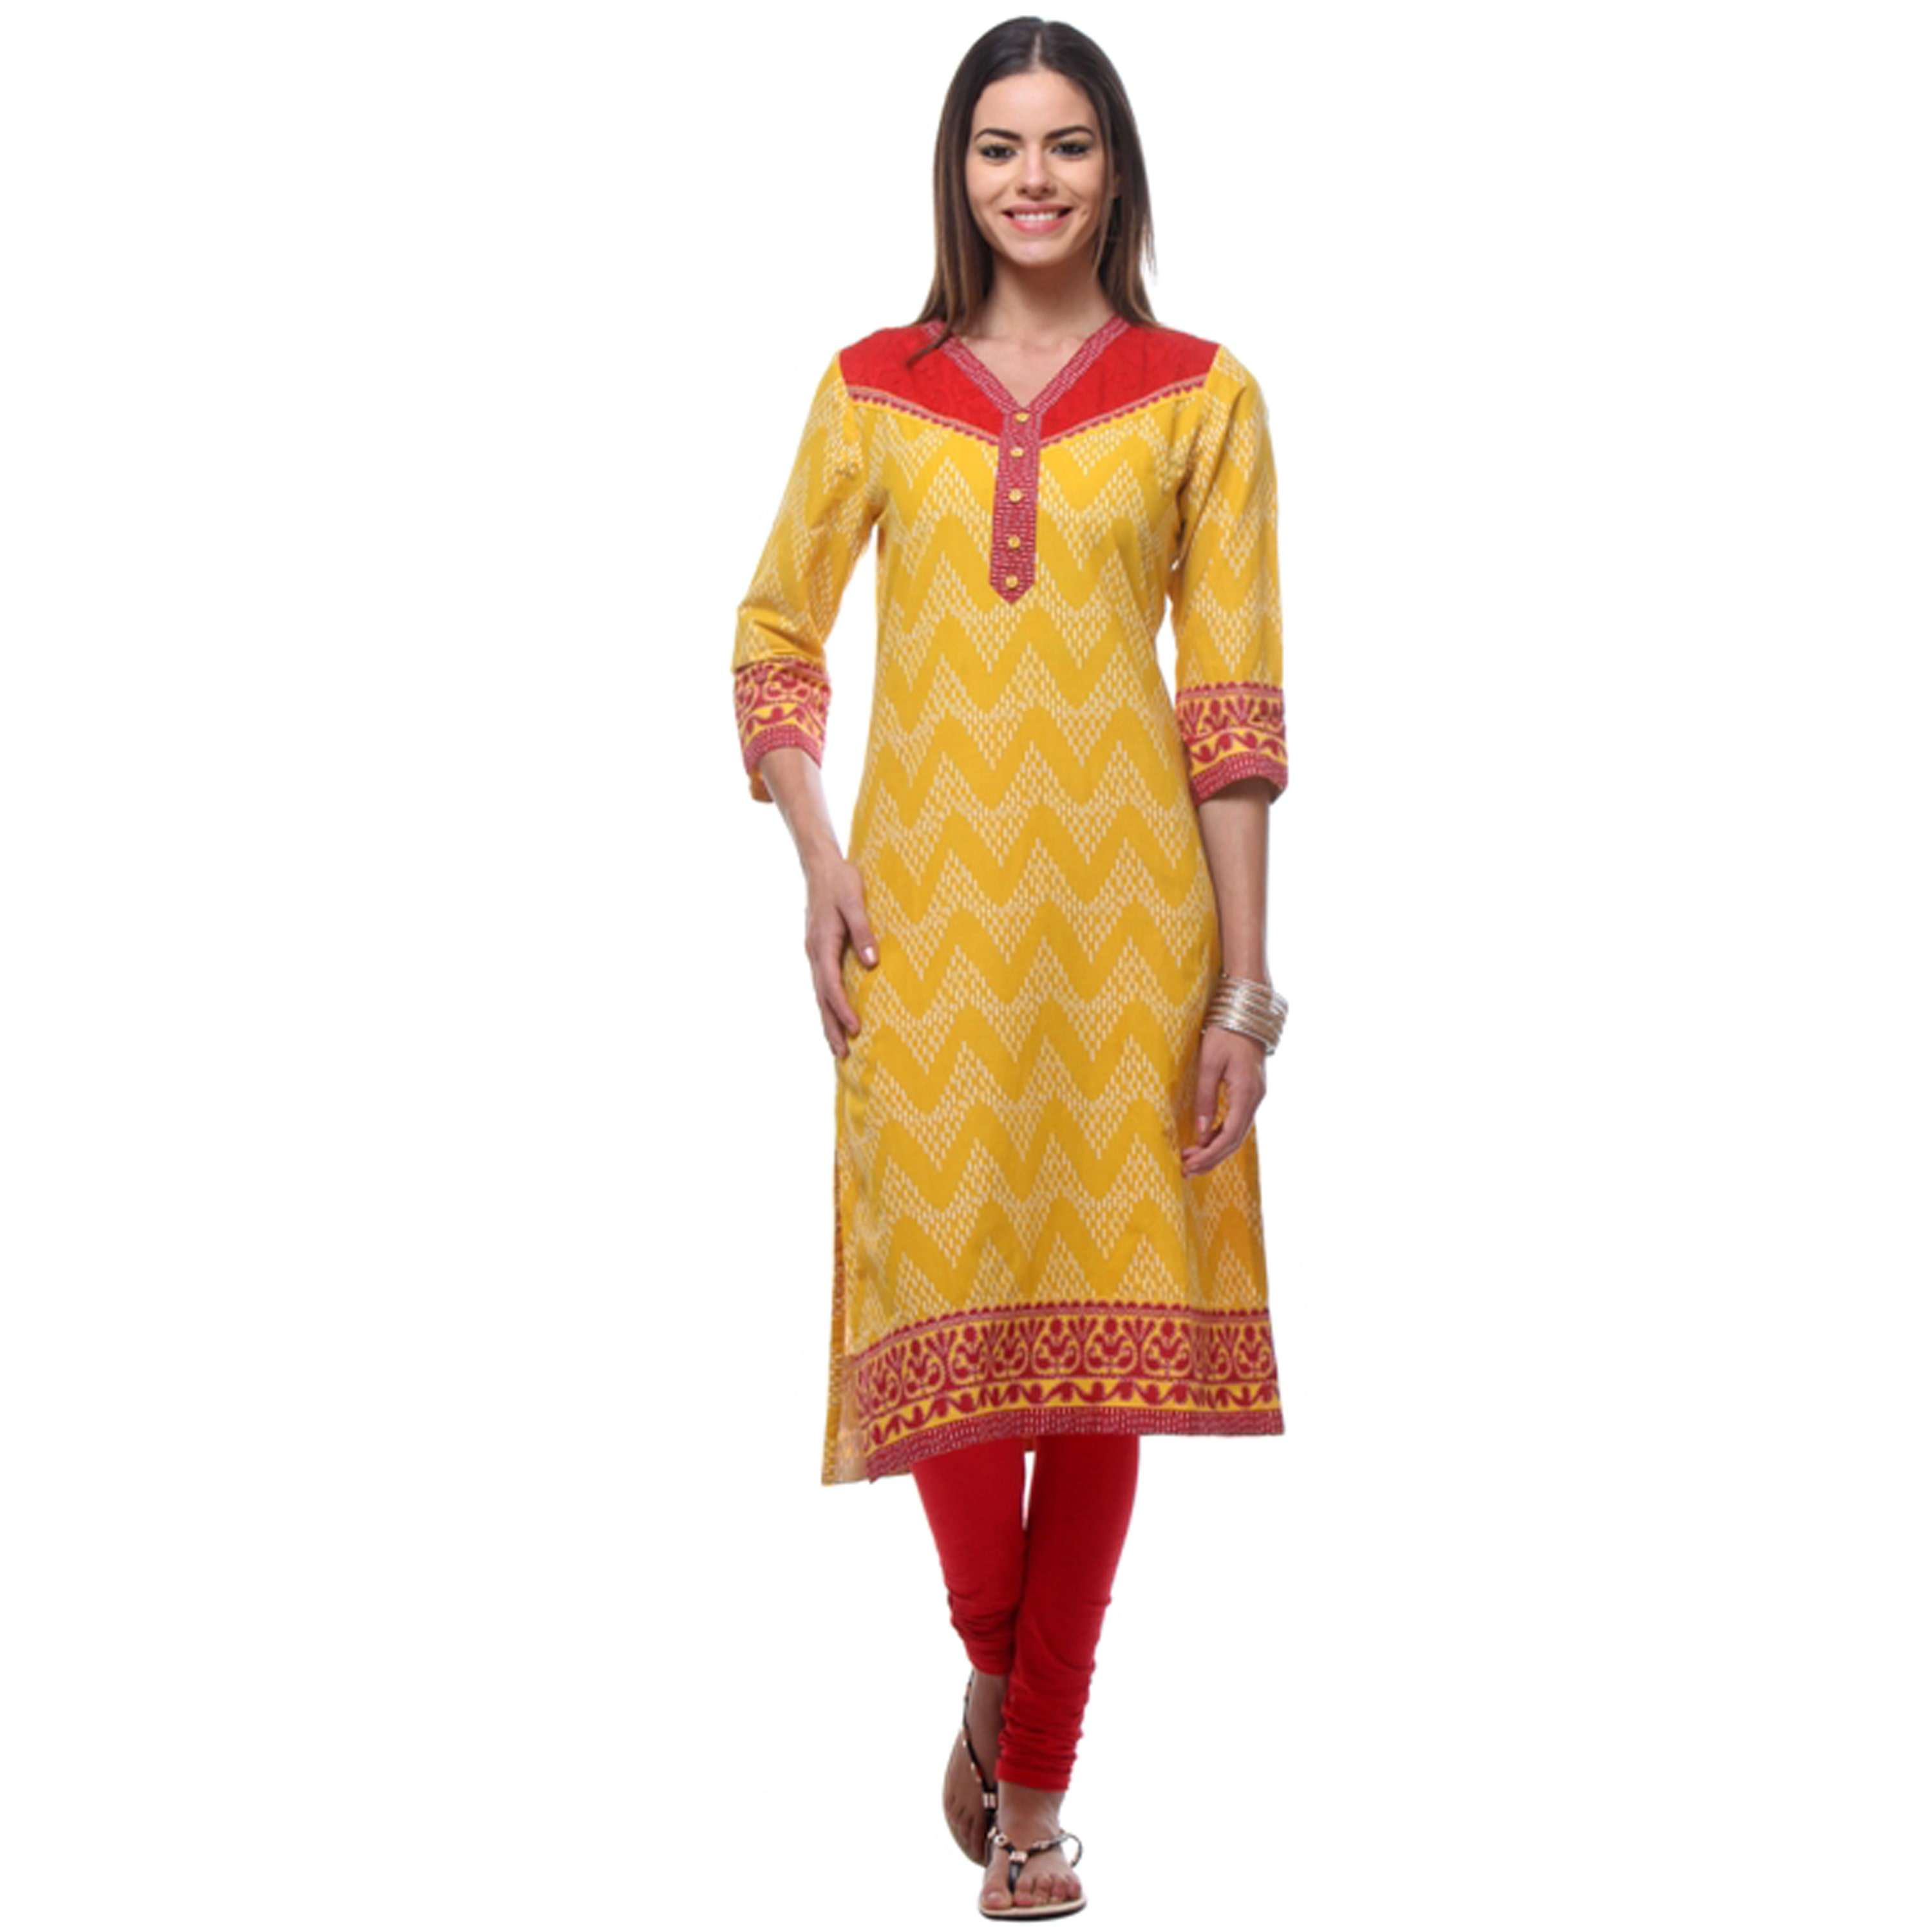 In-Sattva Women's Indian Red/Yellow Zig Zag Patterned Ene...